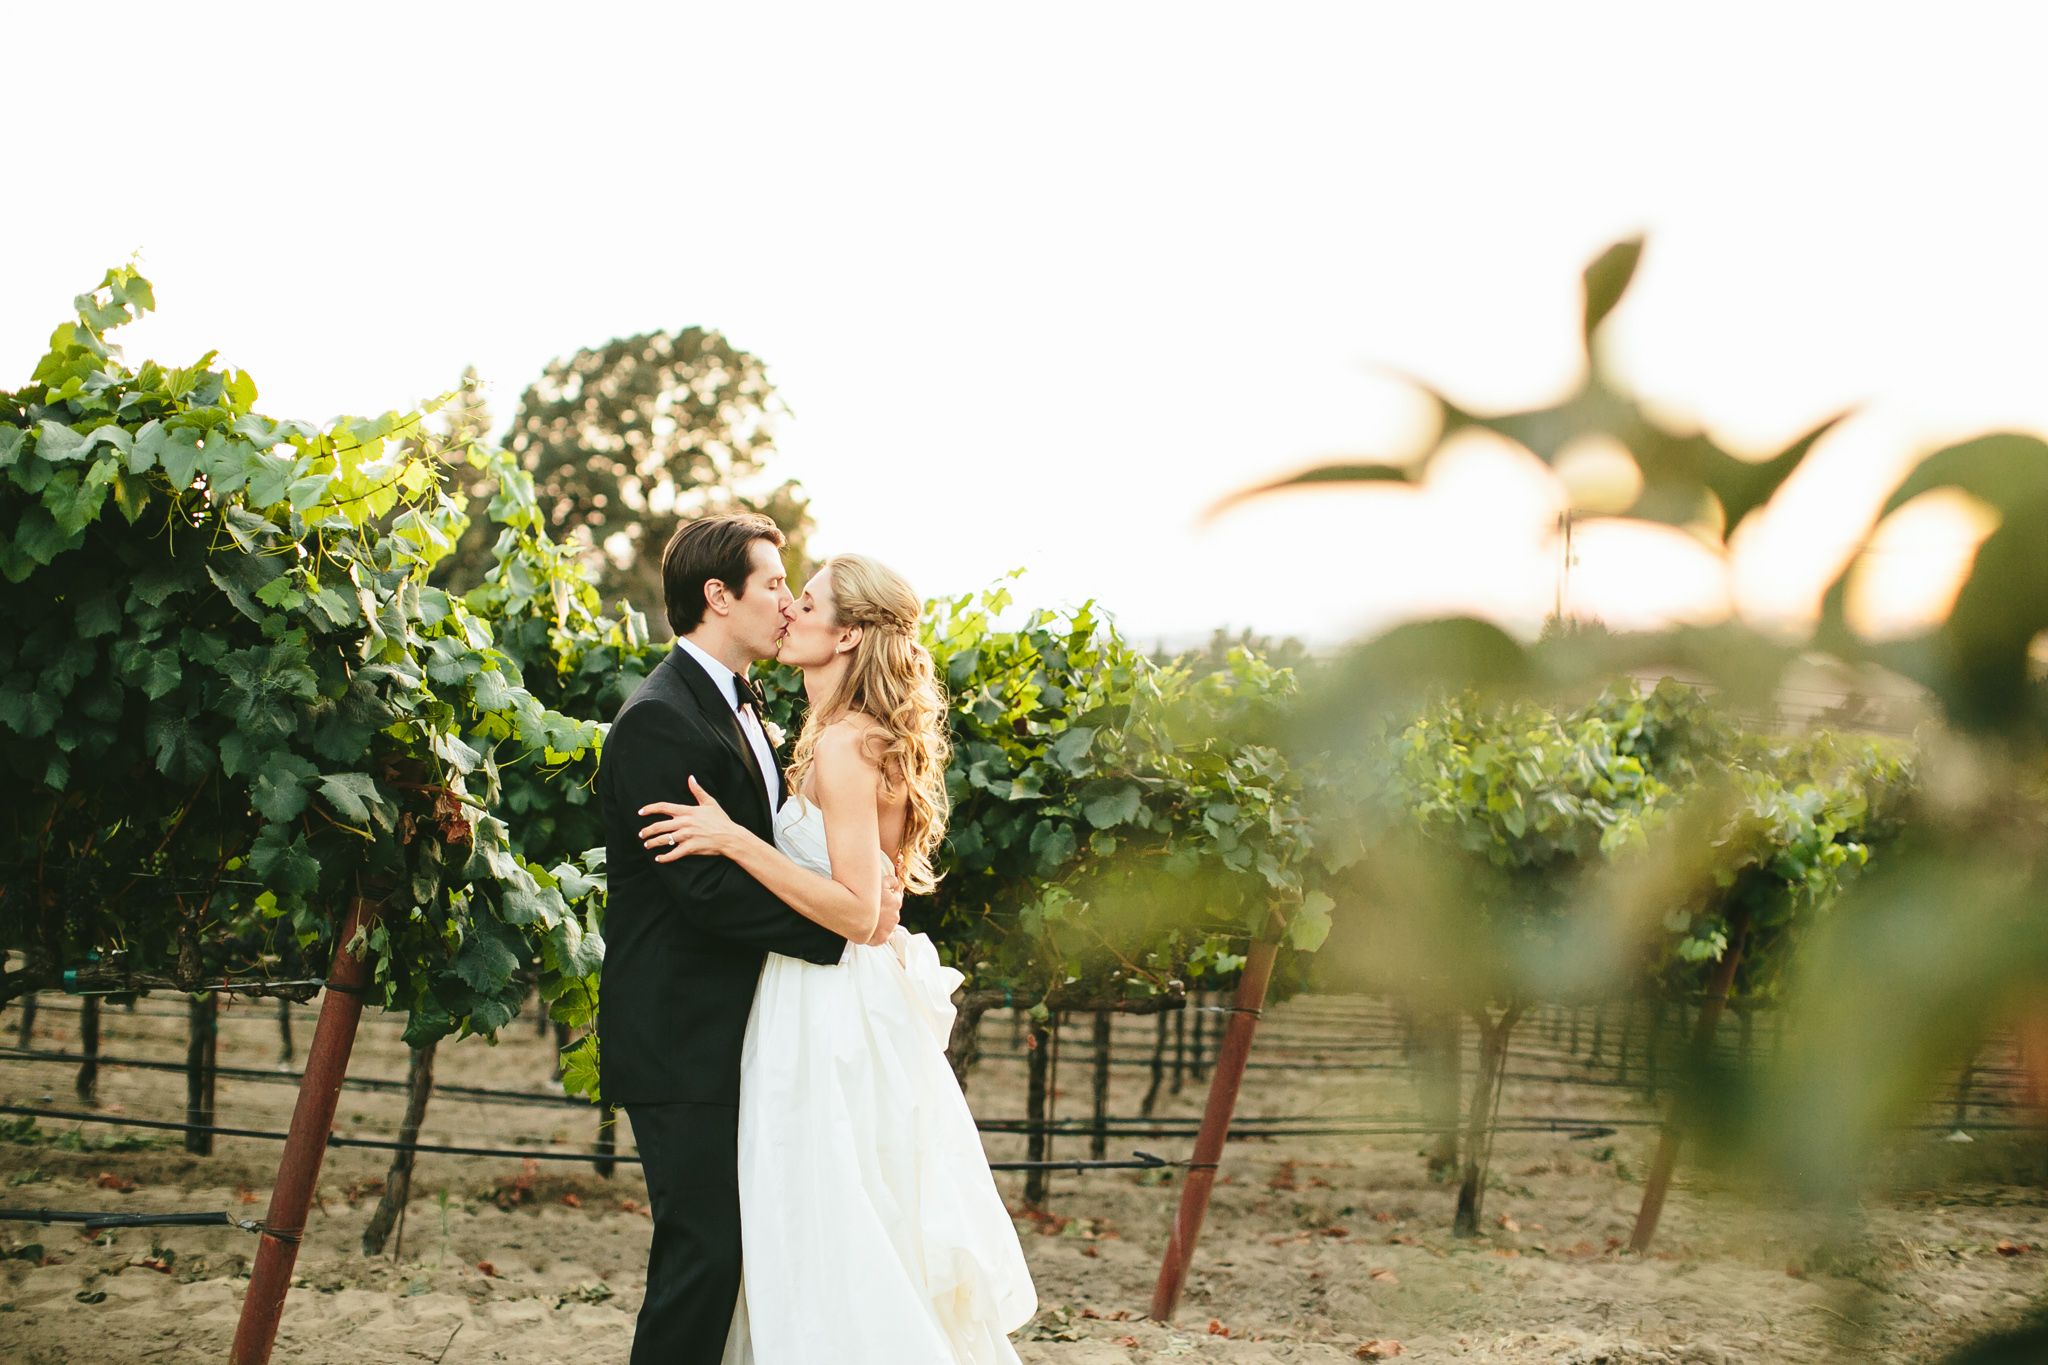 Emily+Nick-WED_BLOG-176